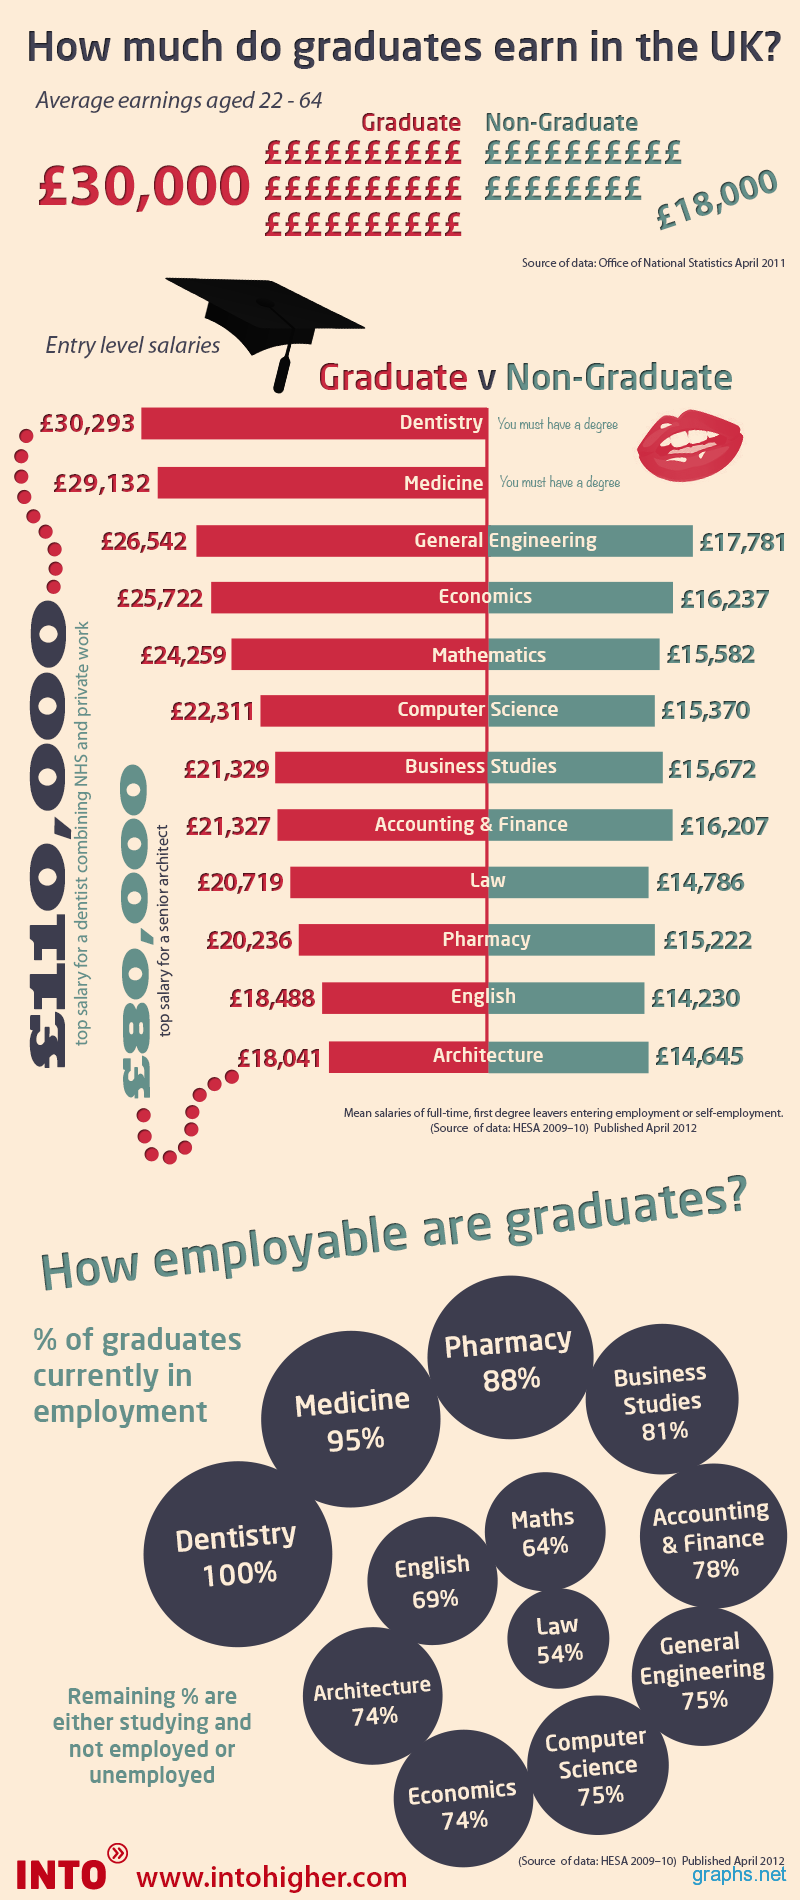 Graduate vs. Non-Graduate Earnings in the UK